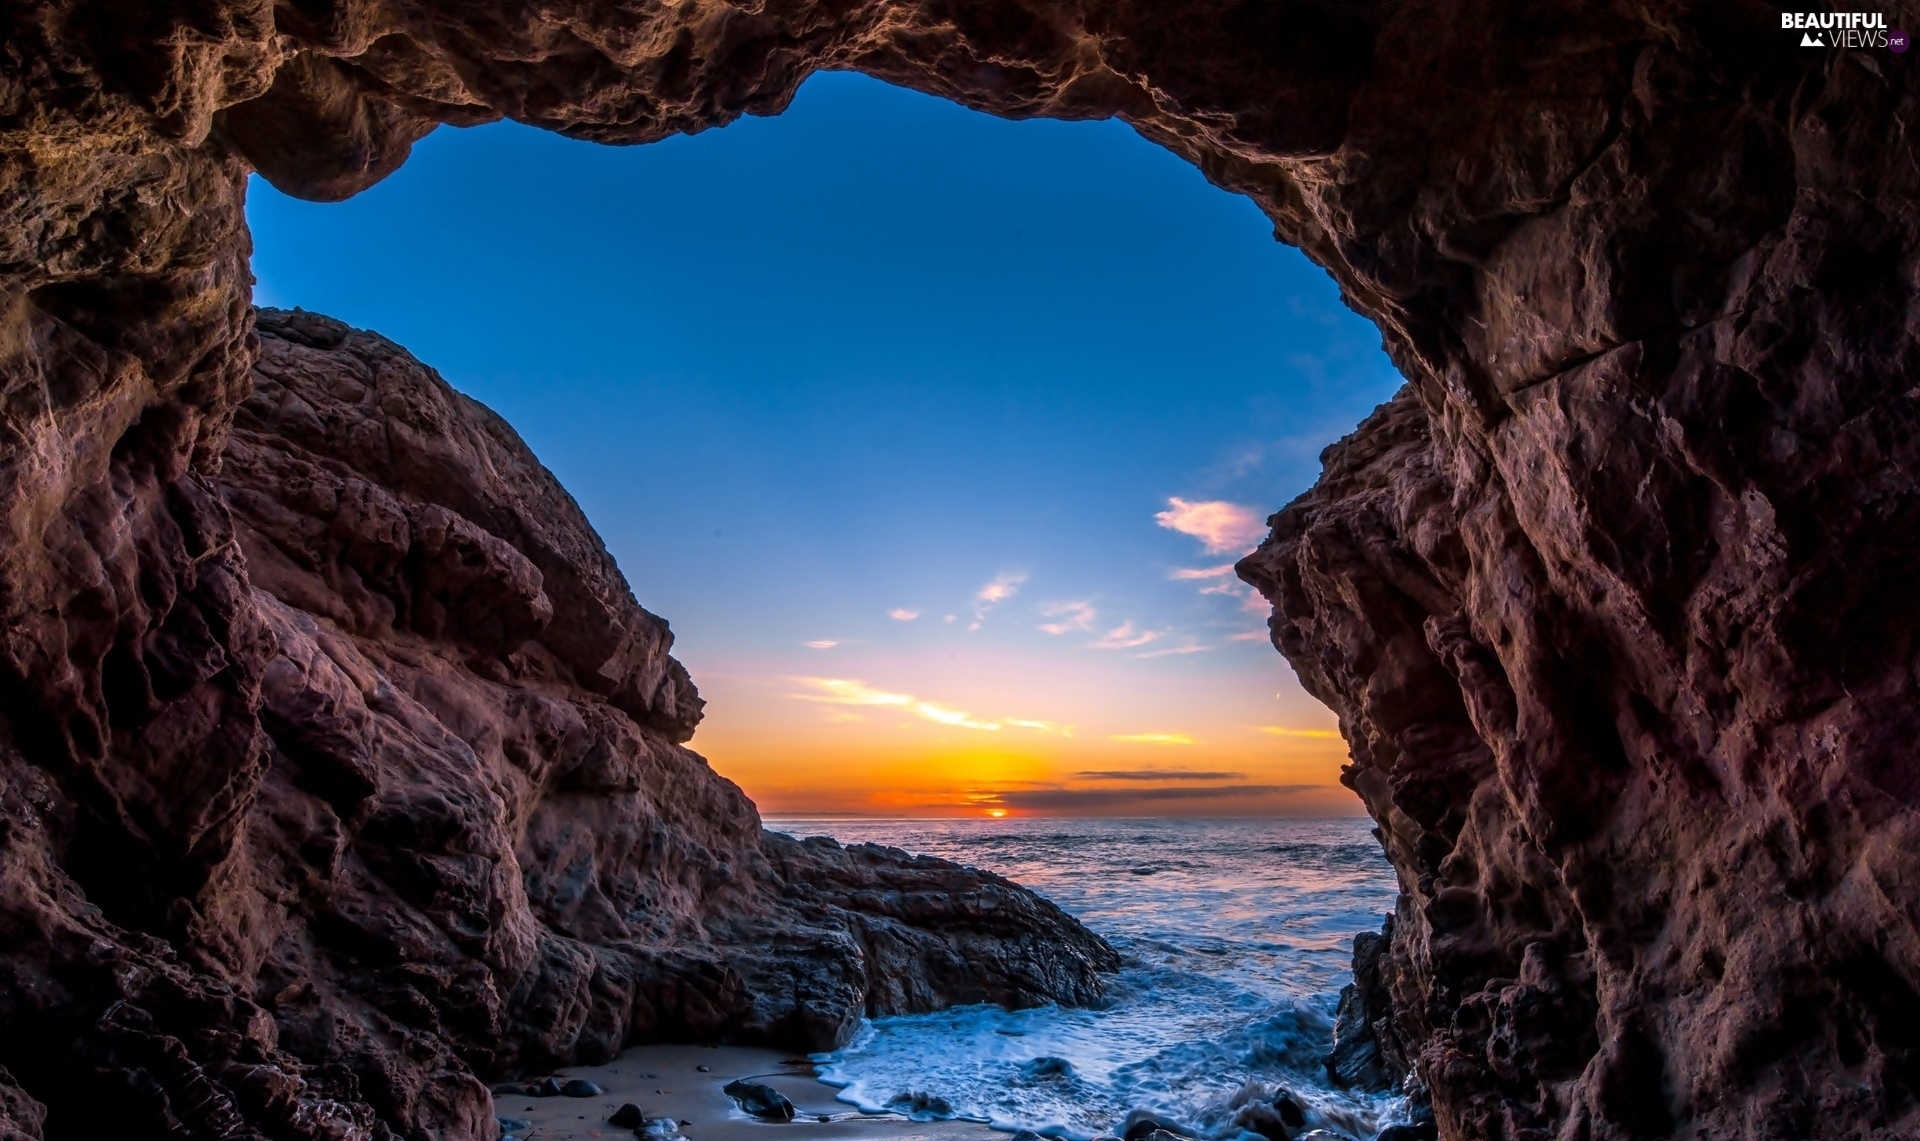 Coast, ocean, USA, west, Malibu, rocks, cave, sun